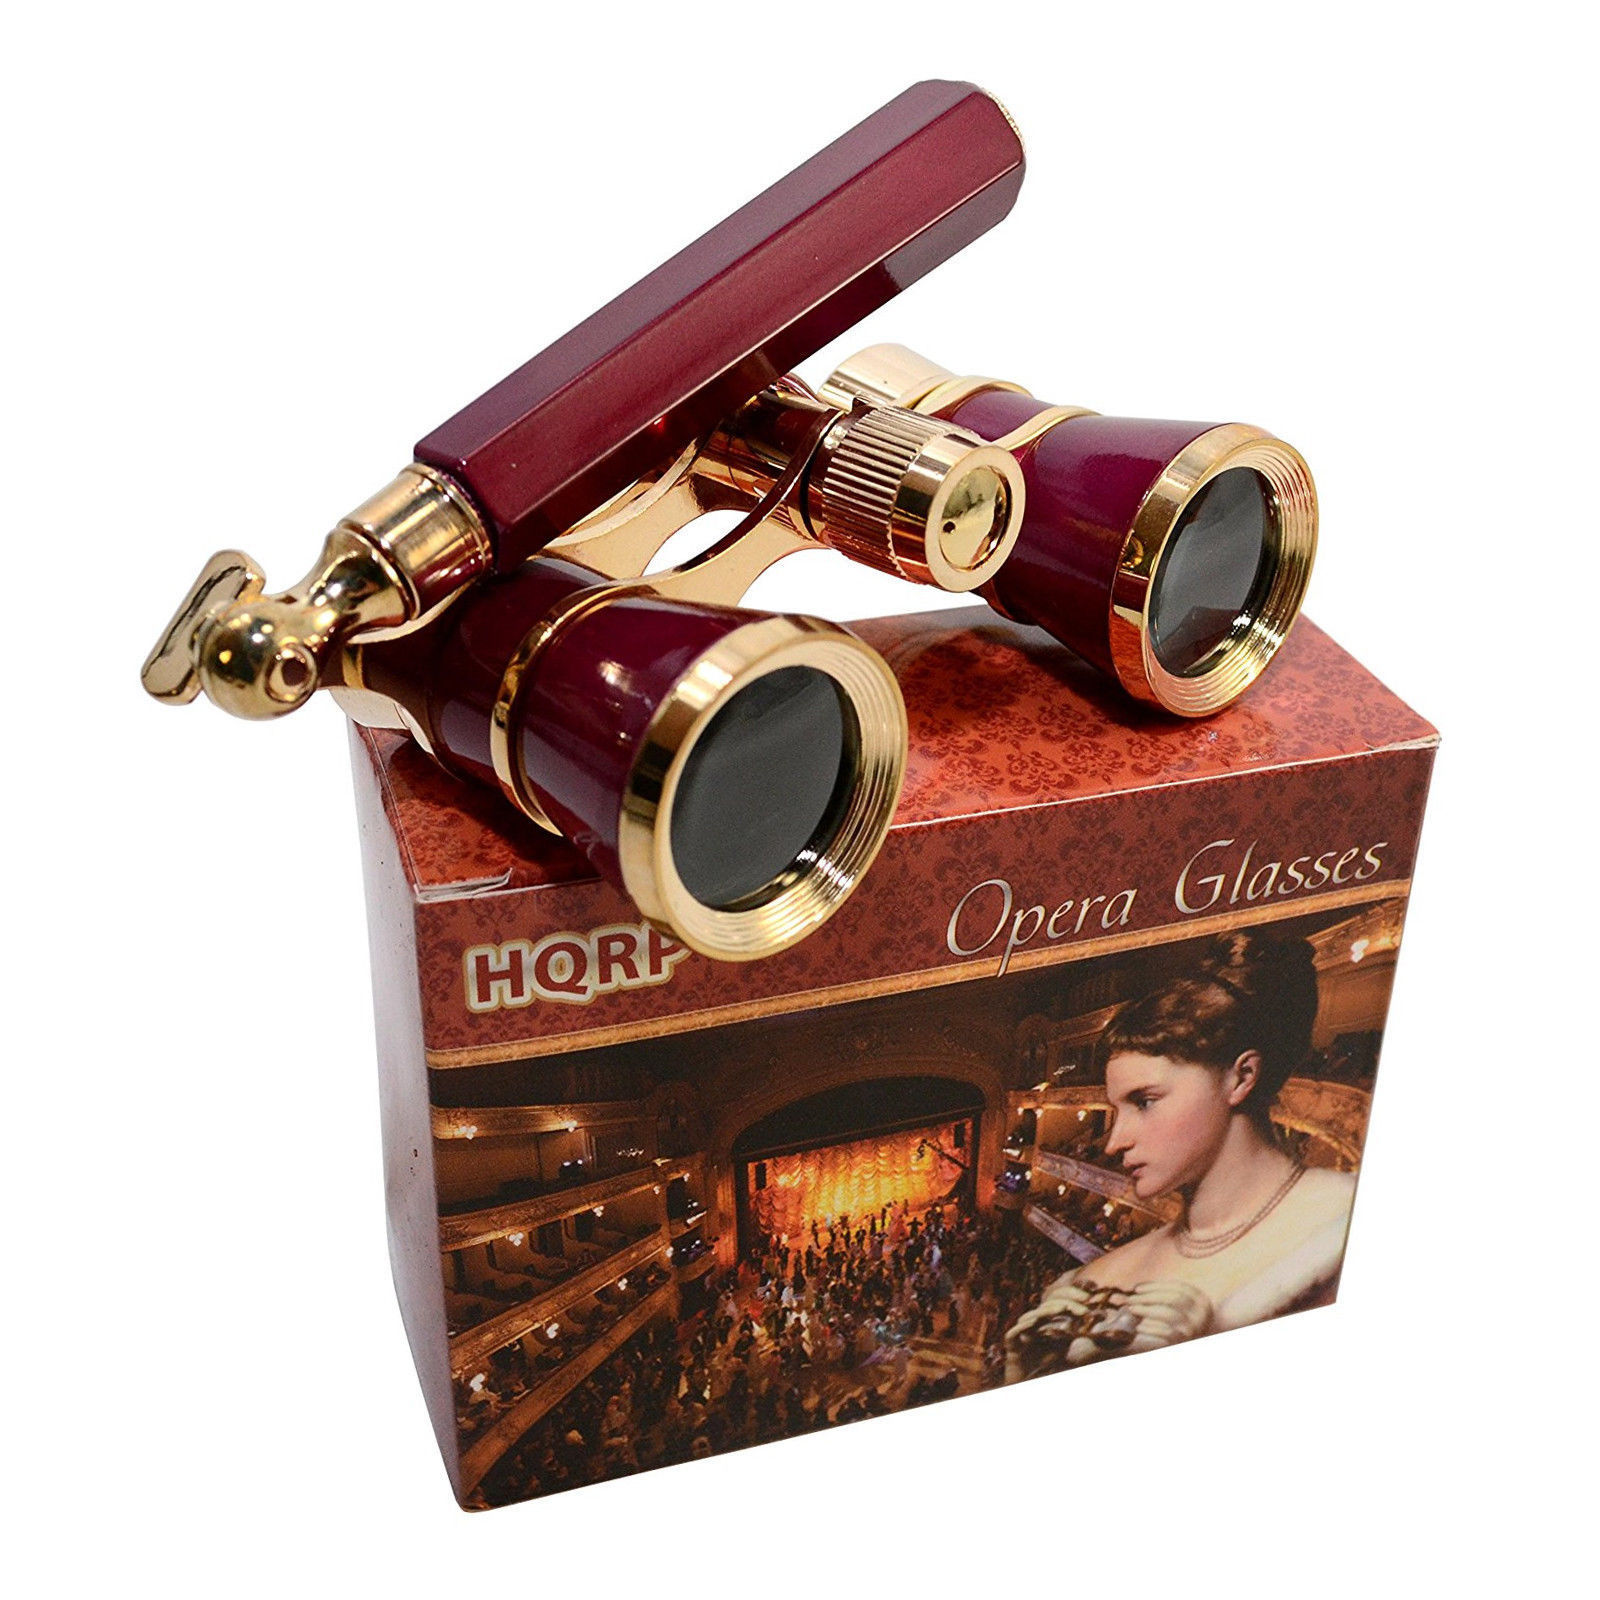 Primary image for HQRP 3x25 Opera Glasses w/ Built-In Extendable Handle / Burgundy with Gold Trim